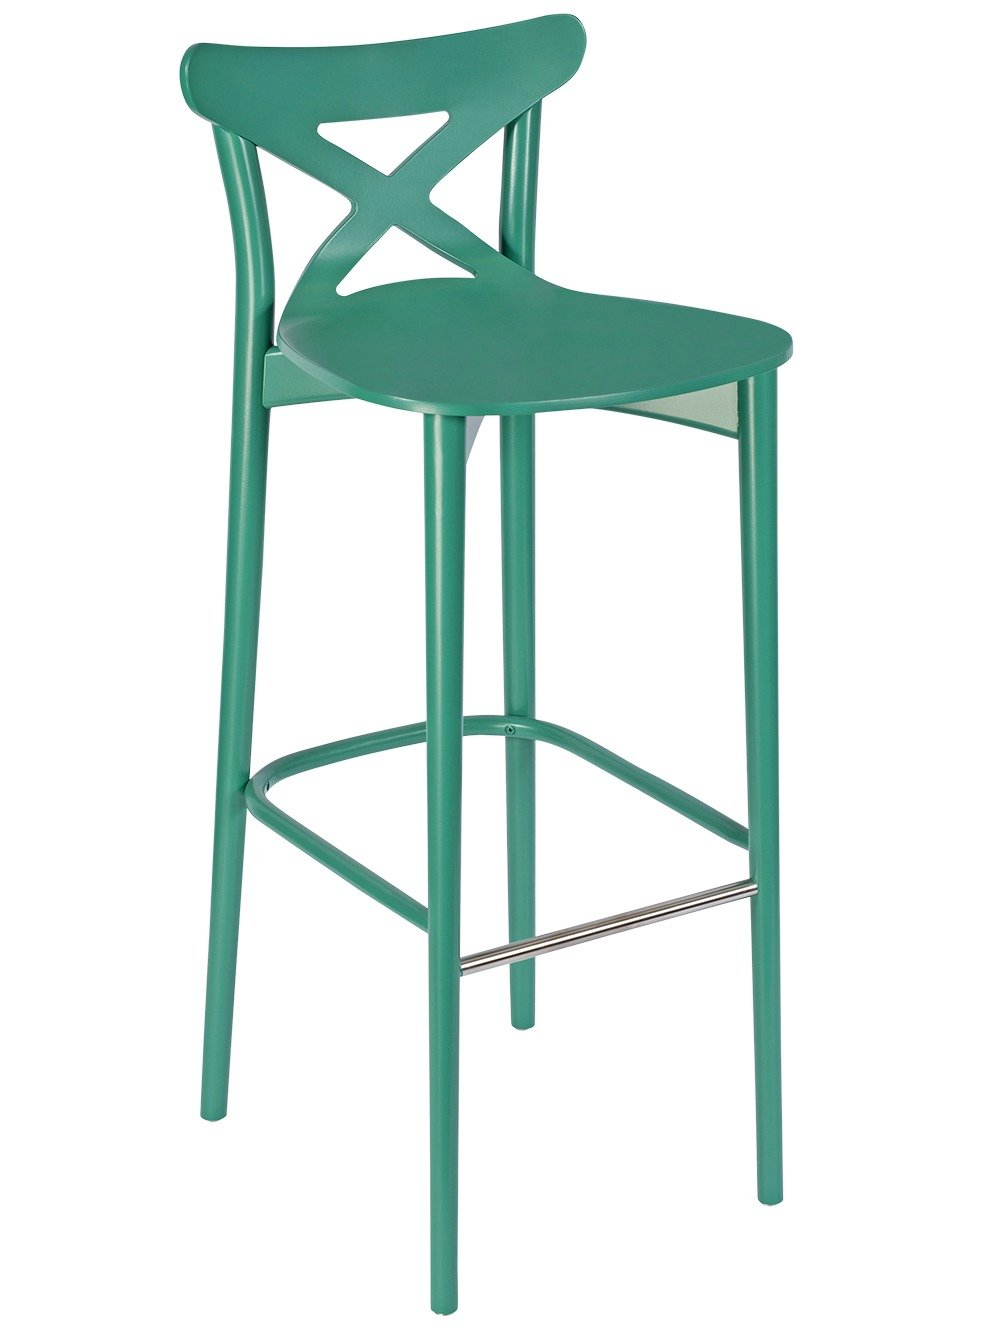 Chiltern Cross Back High Stool | Carlick Contract Furniture